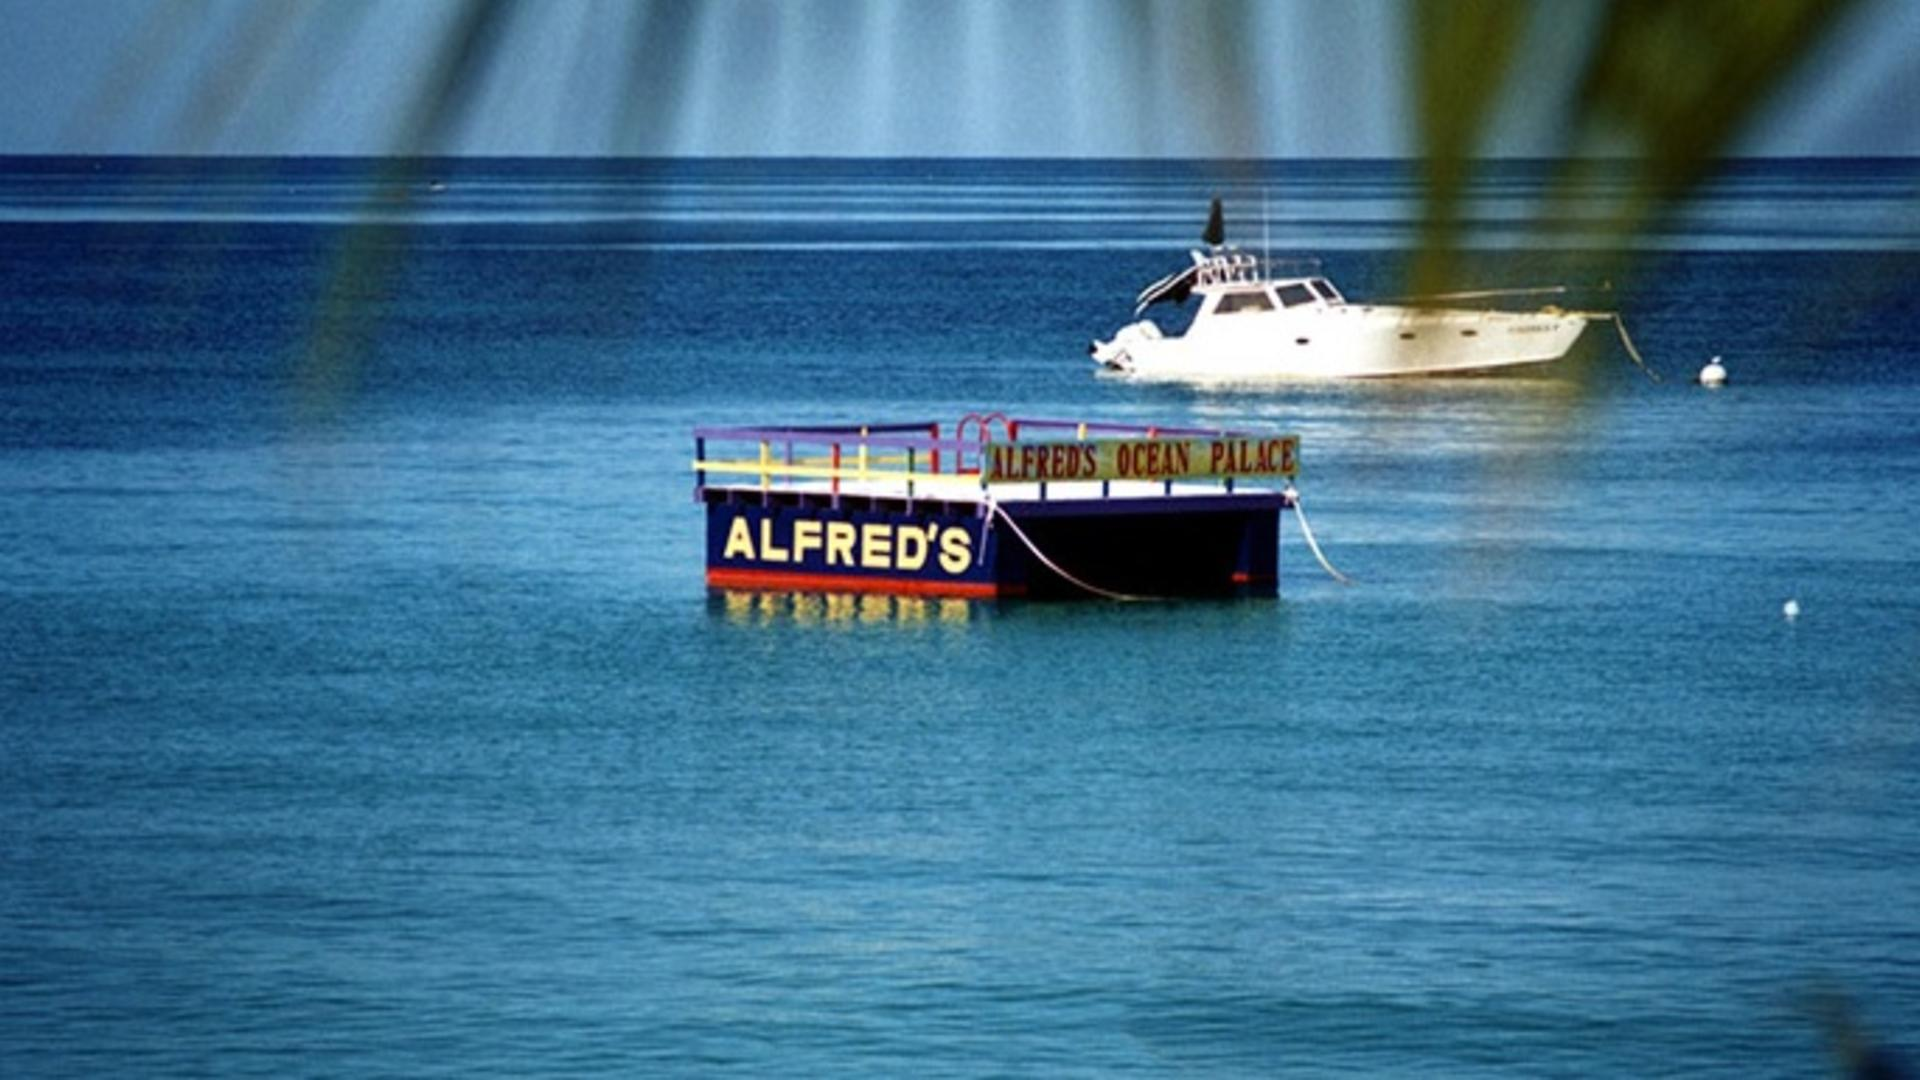 Alfred's Ocean Palace